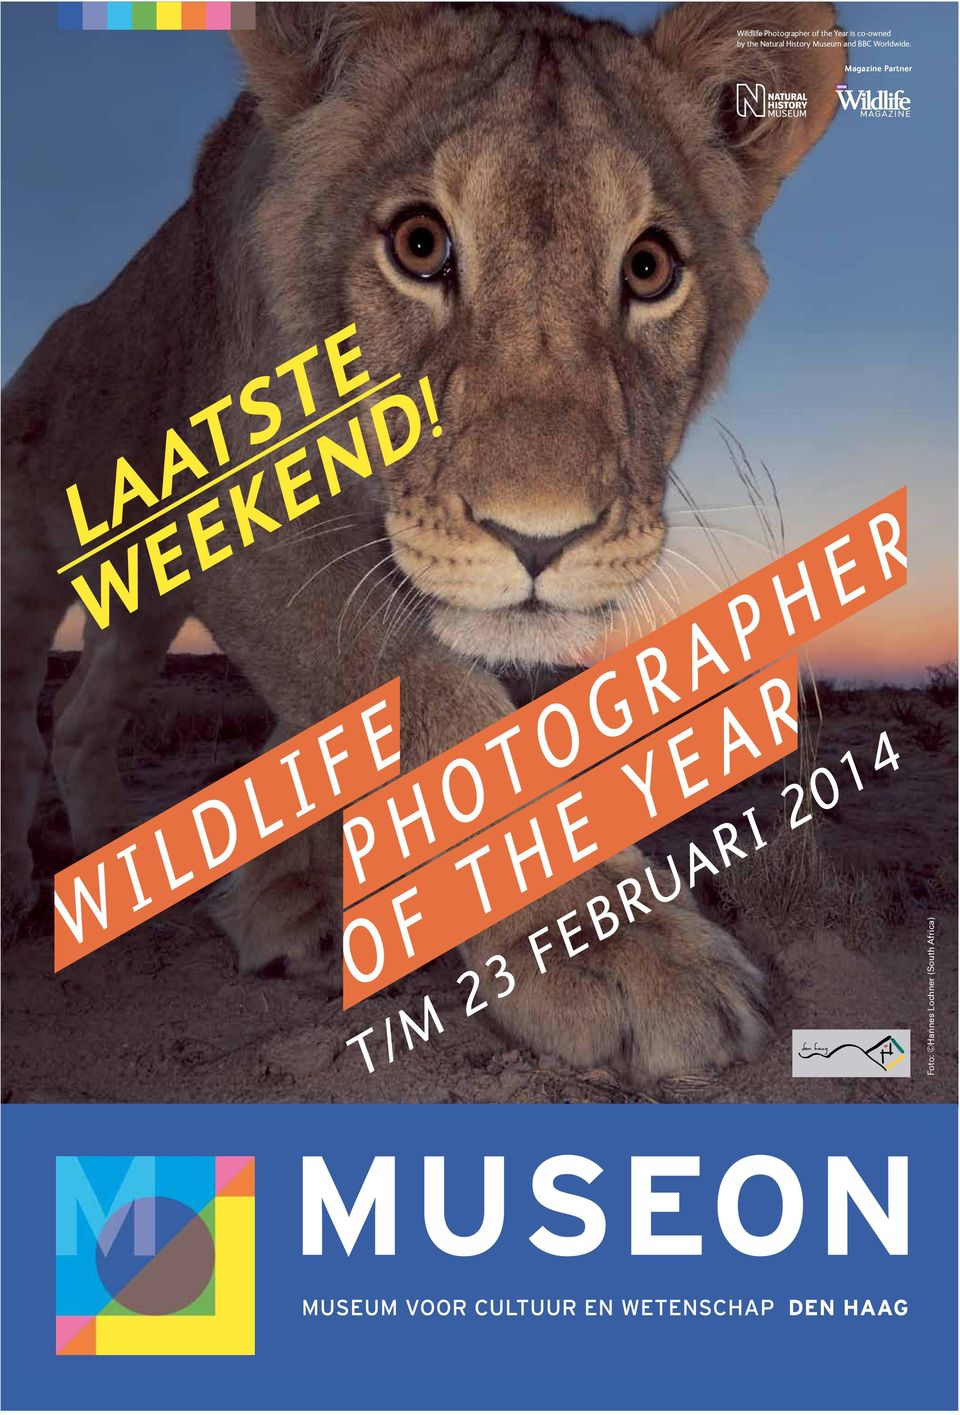 Worldwide. Magazine Partner LAATSTE WEEKEND!